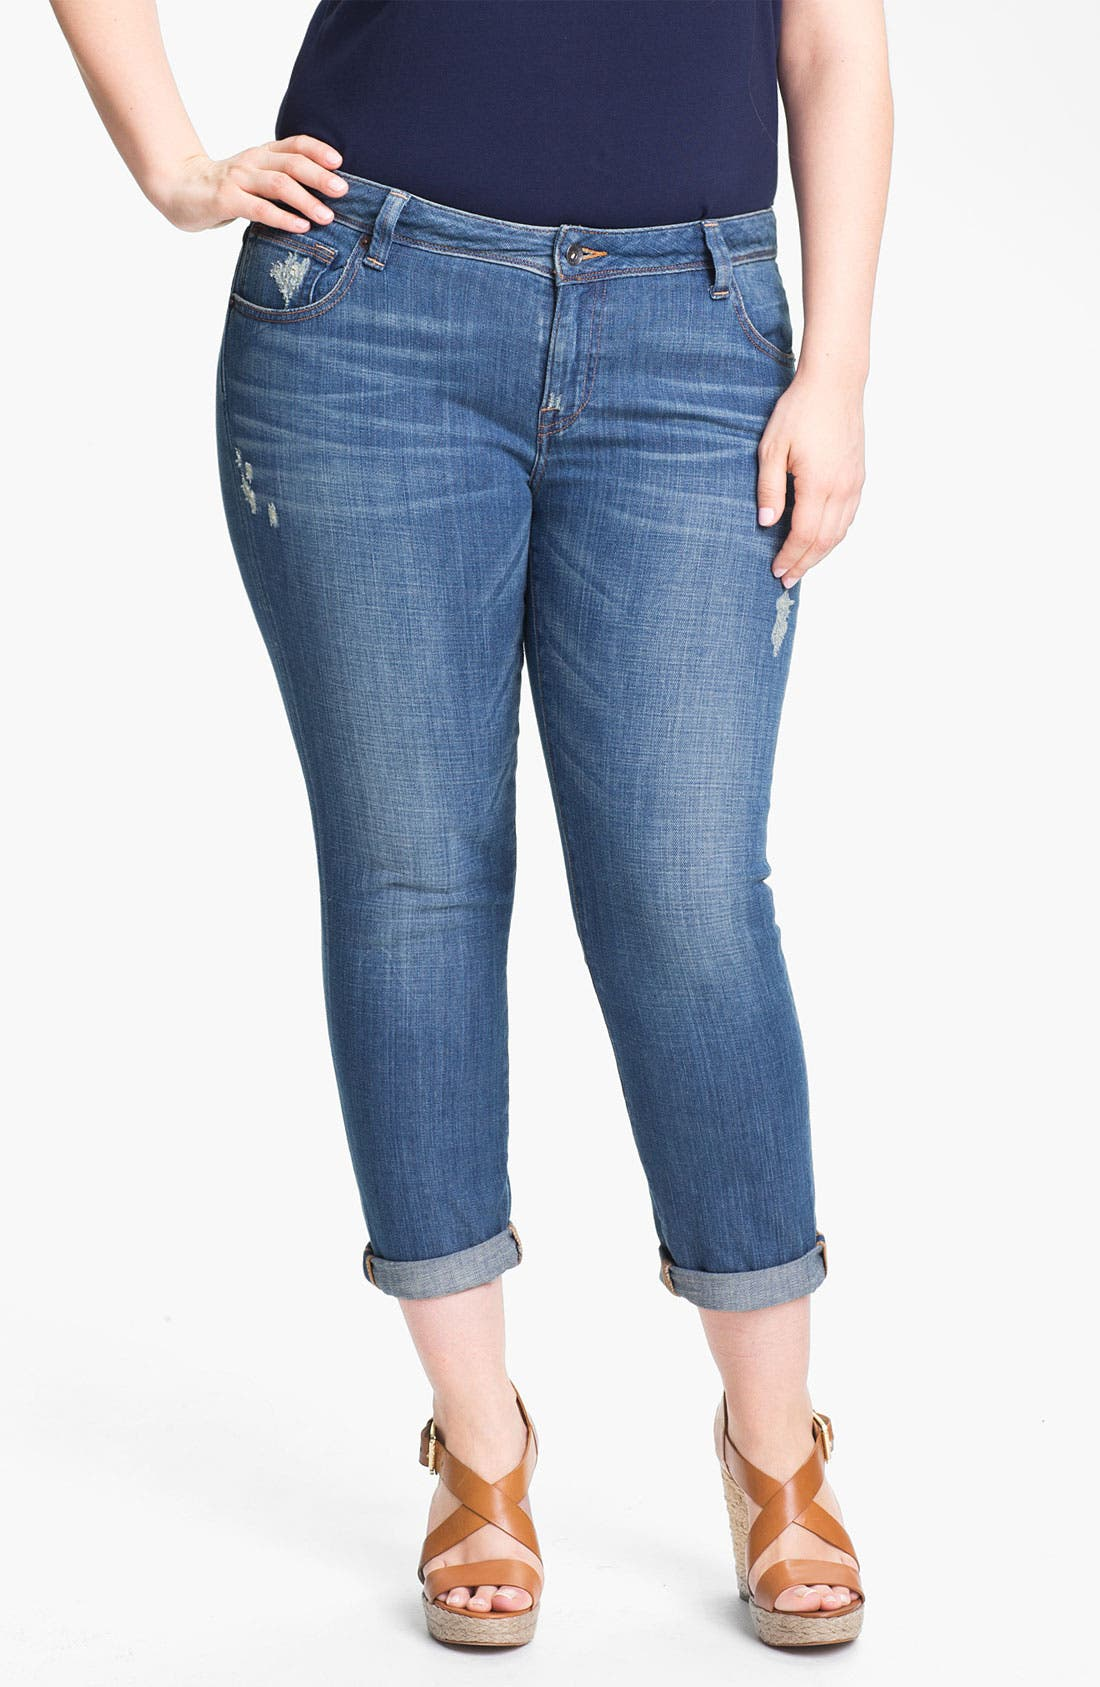 Alternate Image 1 Selected - Lucky Brand 'Ginger' Boyfriend Jeans (Plus Size)